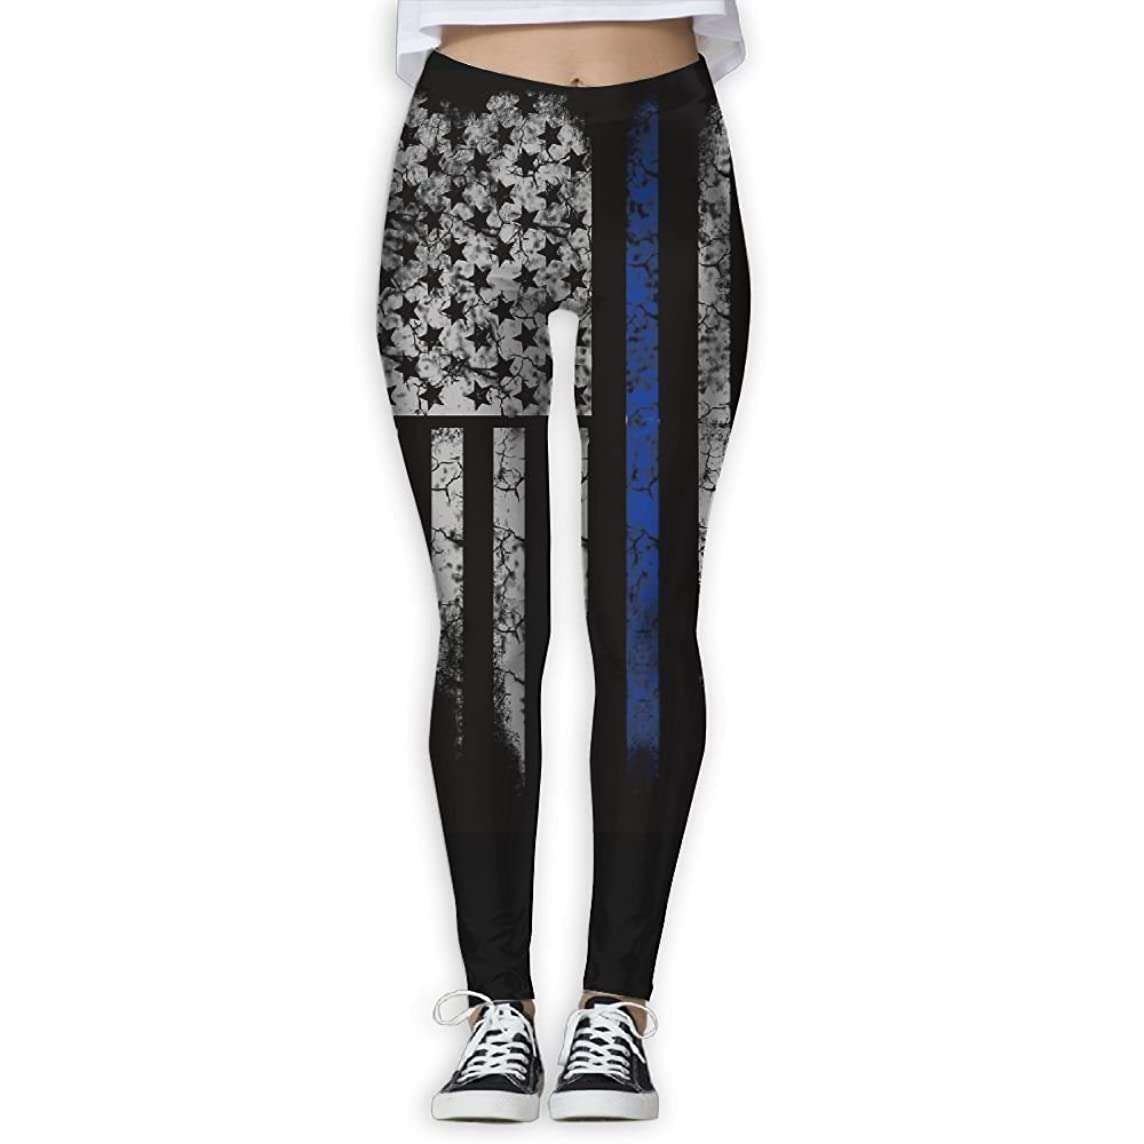 Womens Yoga Pants Athletic Stretchy Tights Elasticity Leggings Workout Pants Thin Blue Line Flag Crack